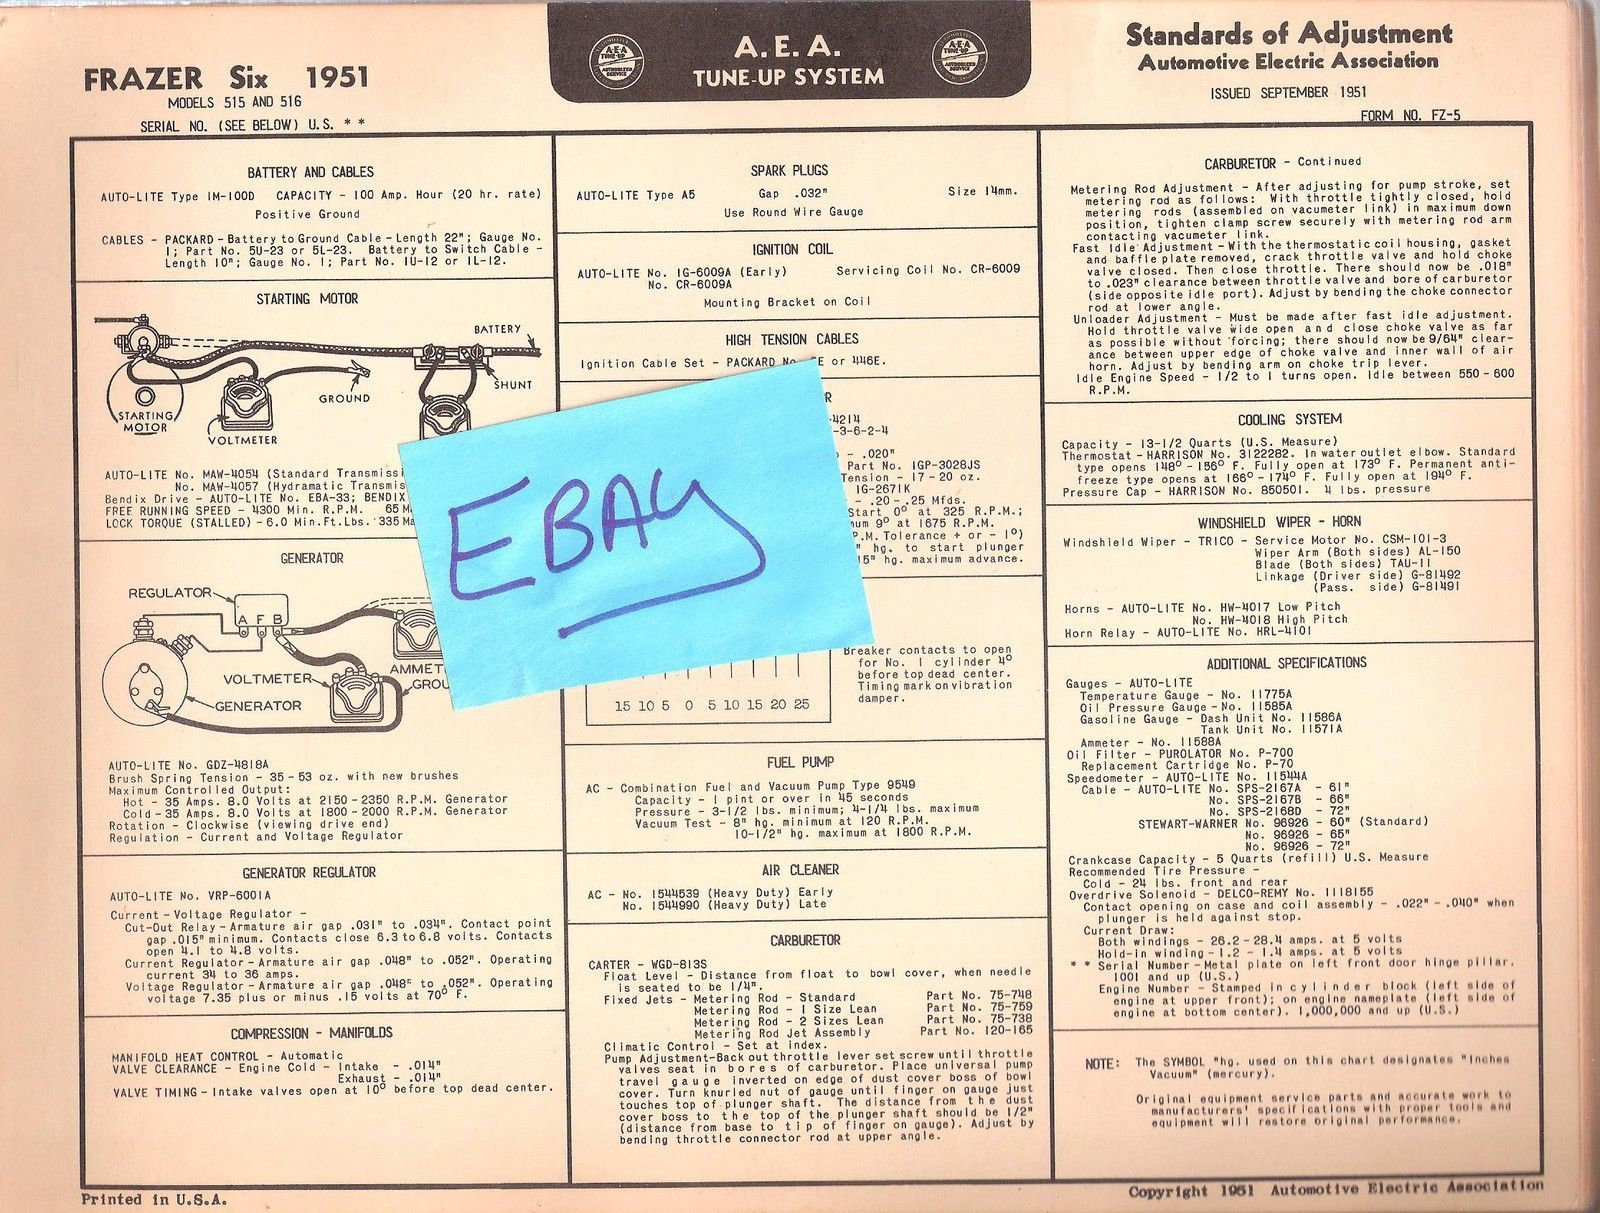 1951 AEA Tune-up Chart Wiring Diagram Frazer and 50 similar items